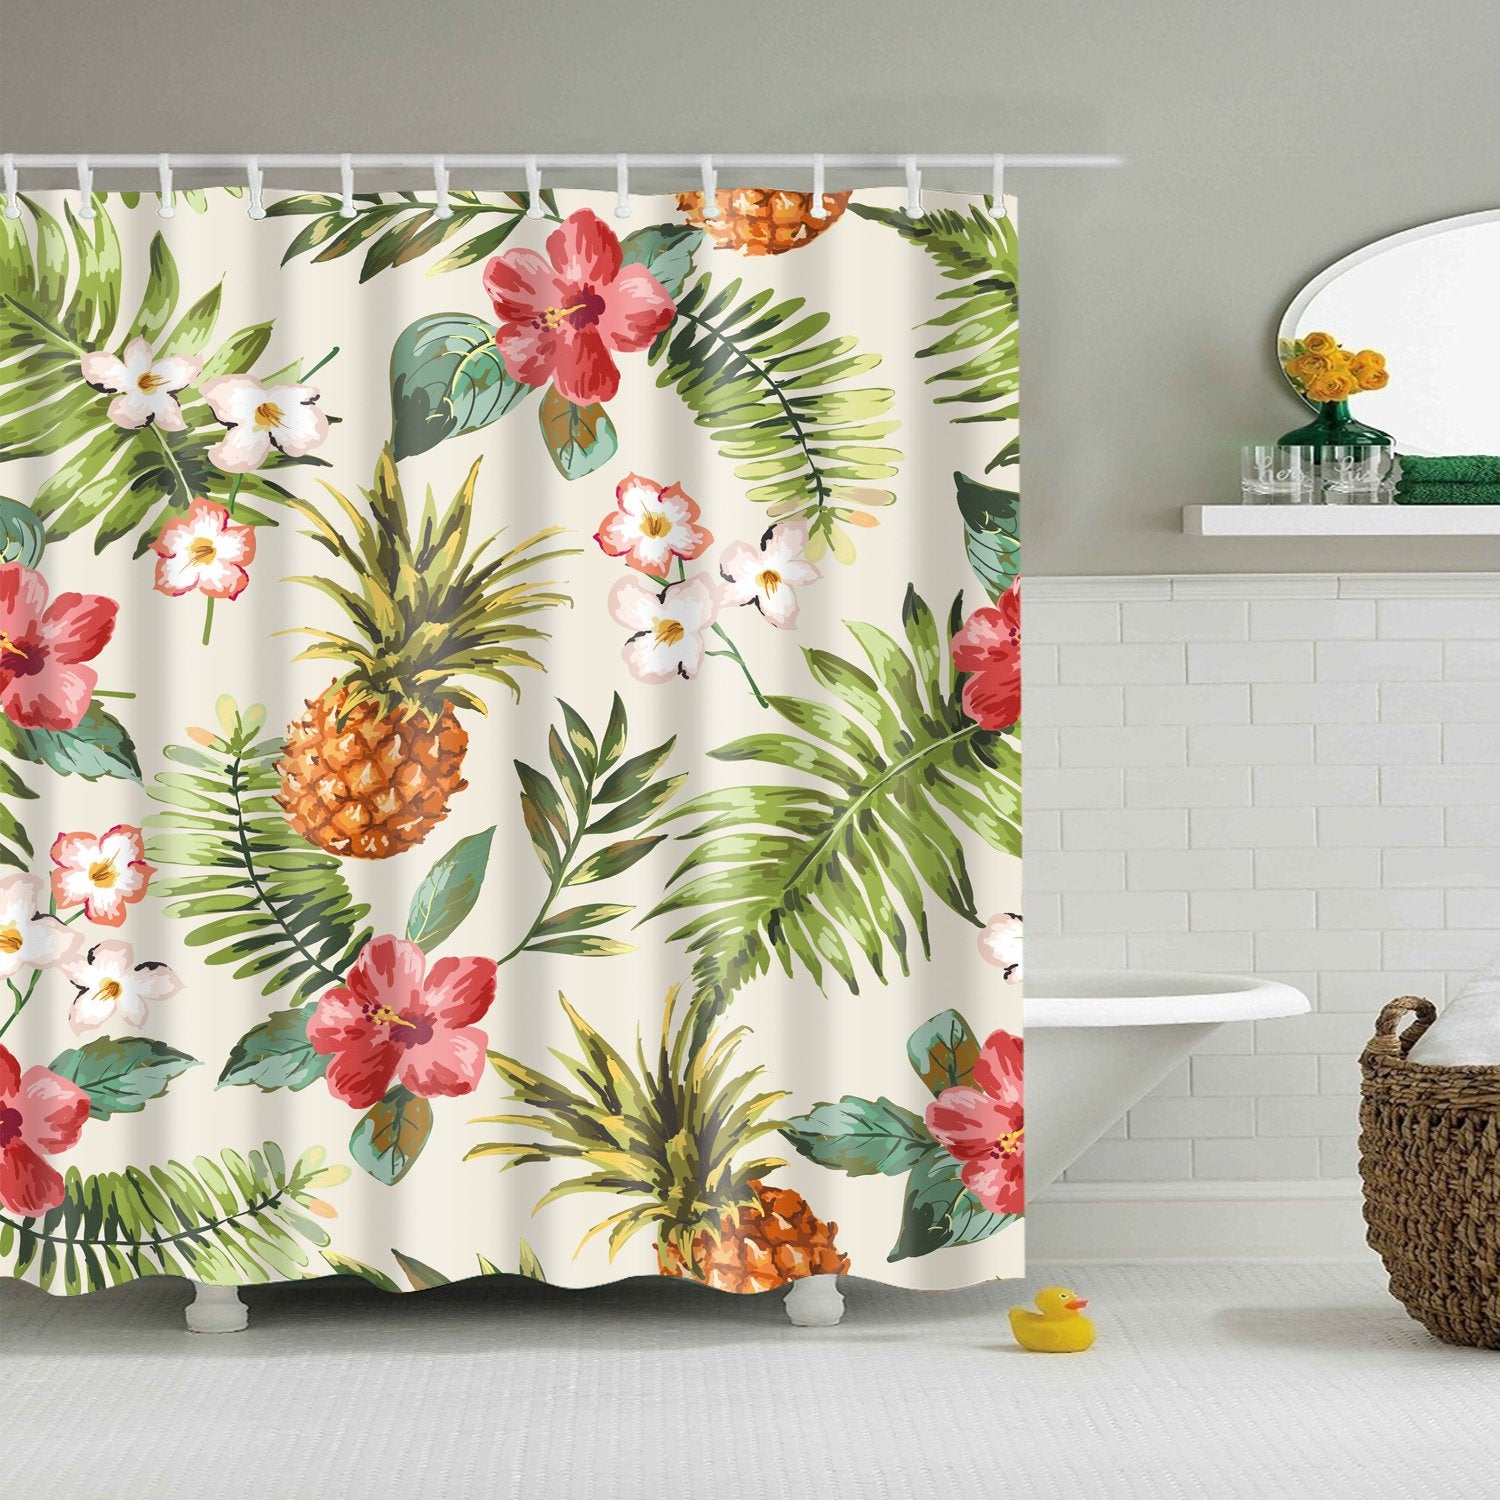 Pineapple Paradise Eco-Friendly Shower Curtain - The Pineapple Everything